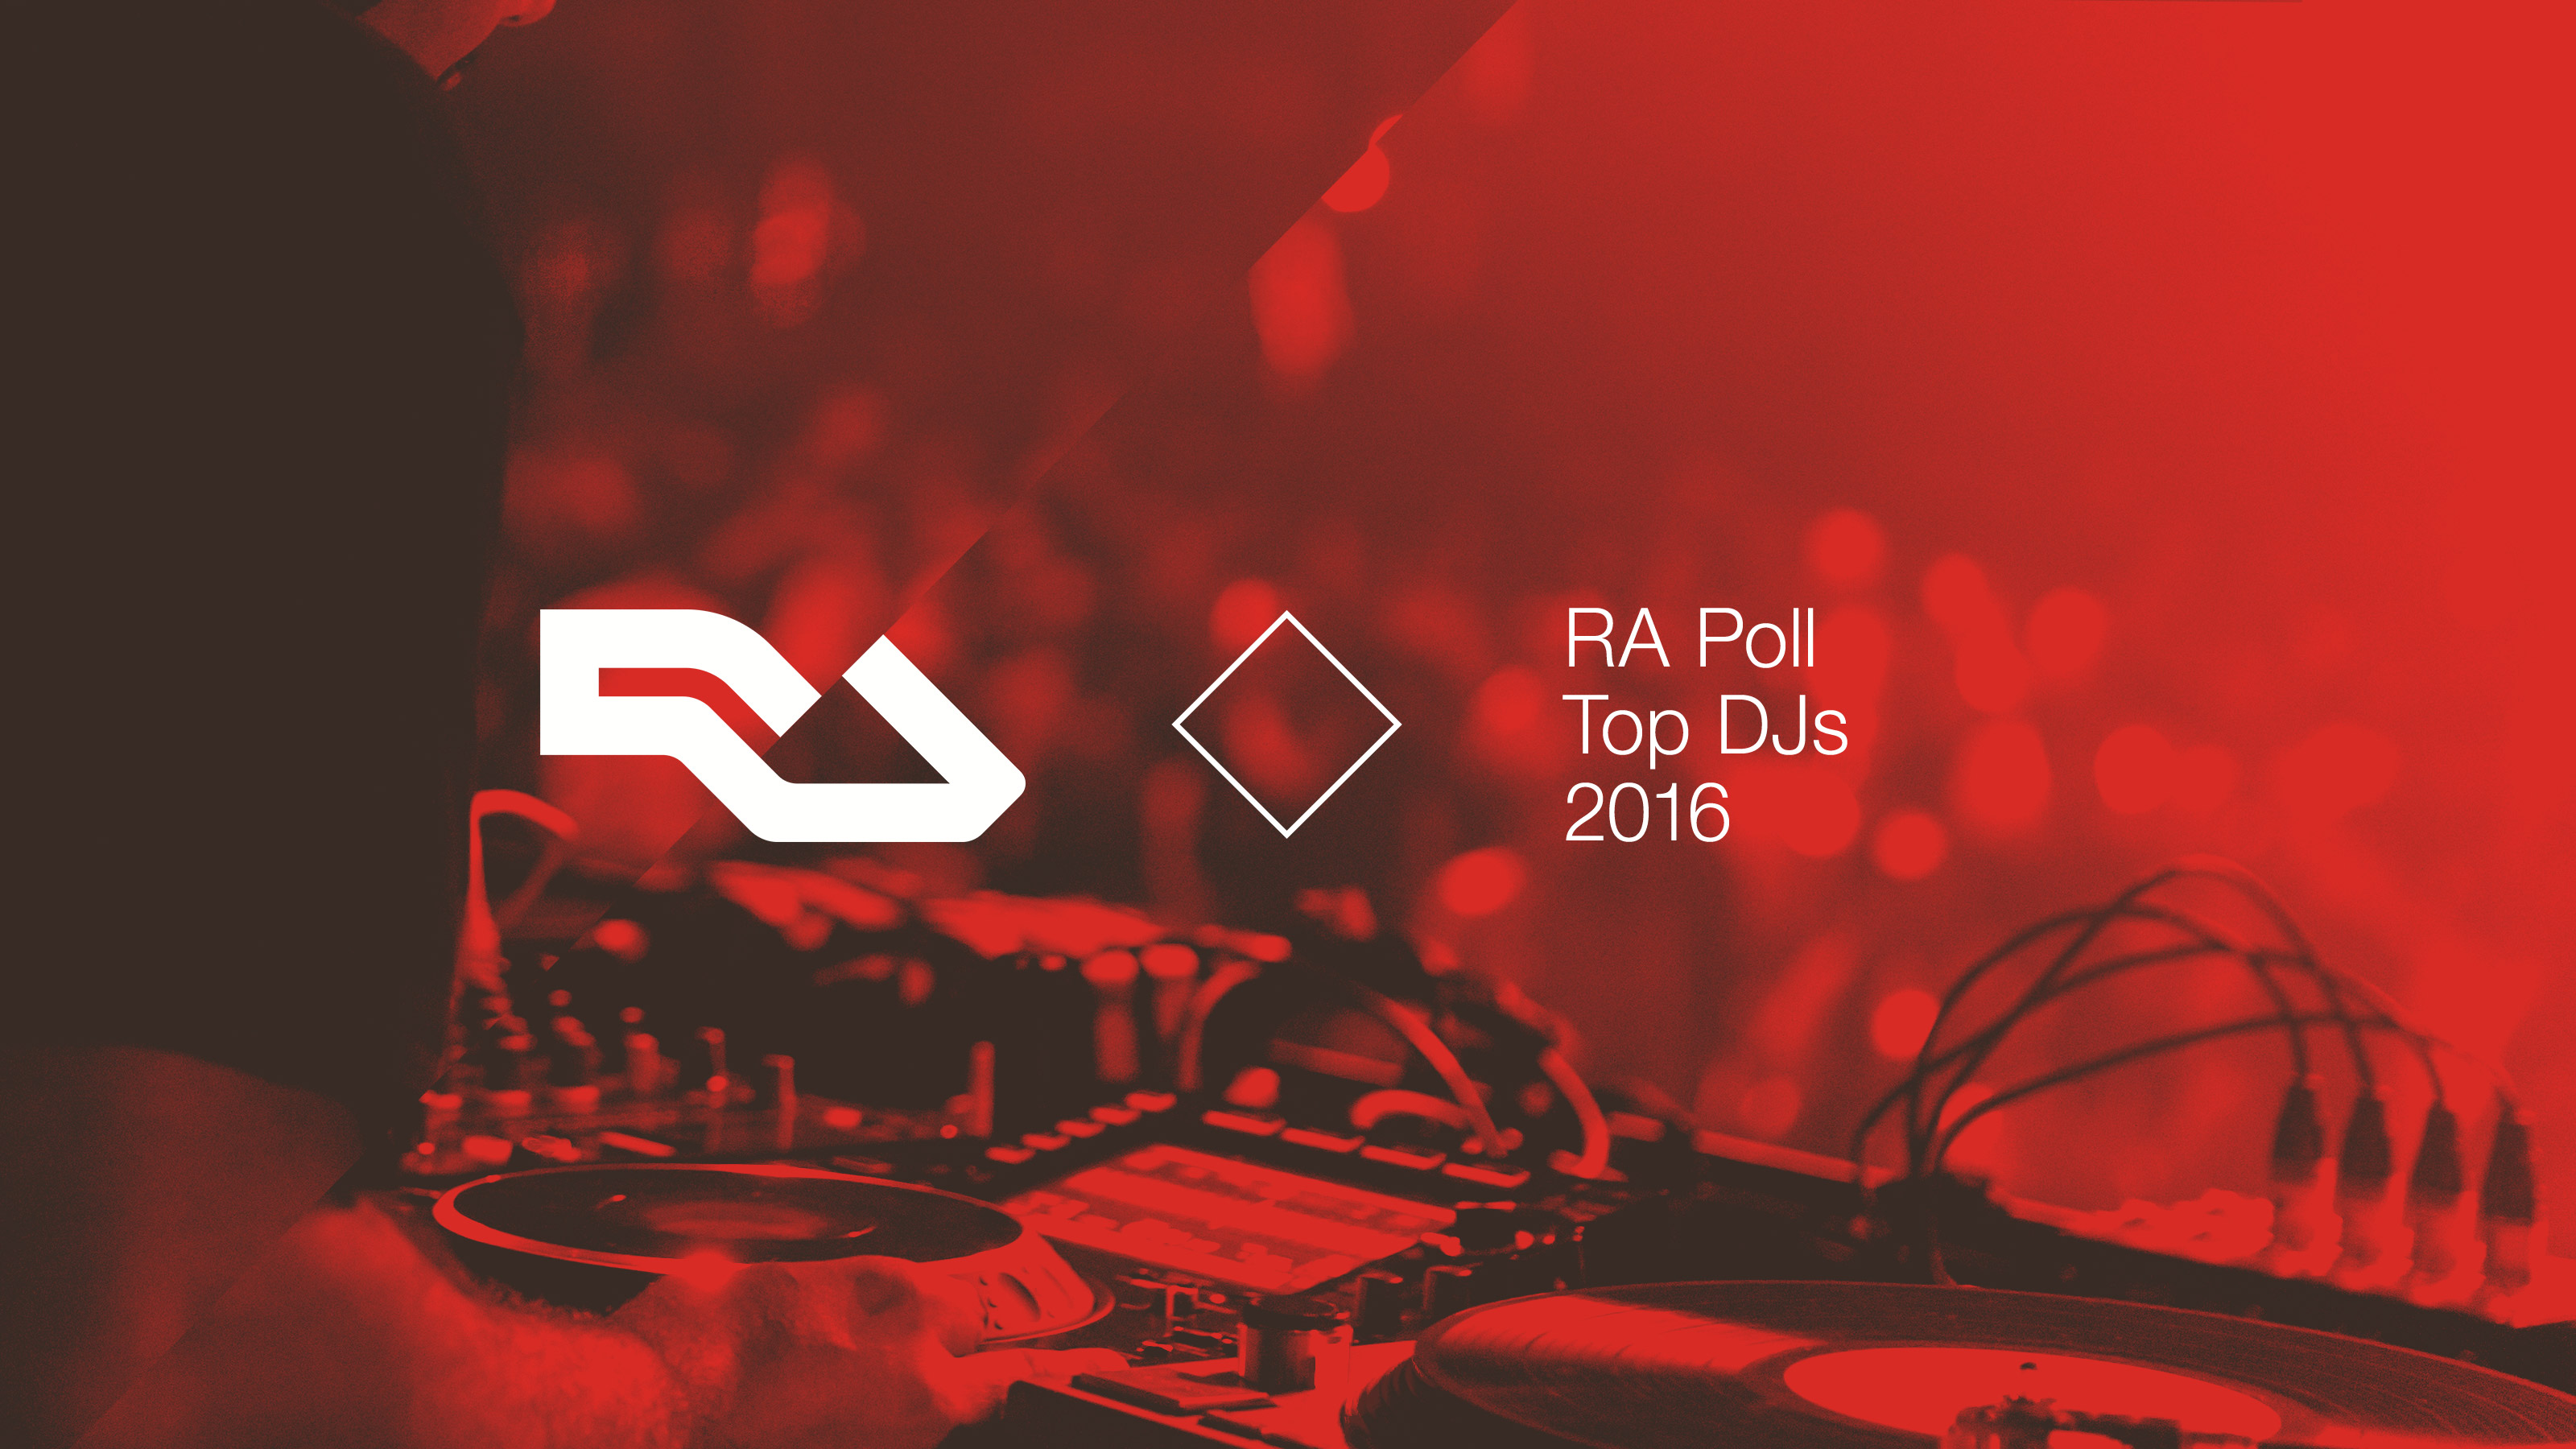 resident advisor -poll-top-100-djs